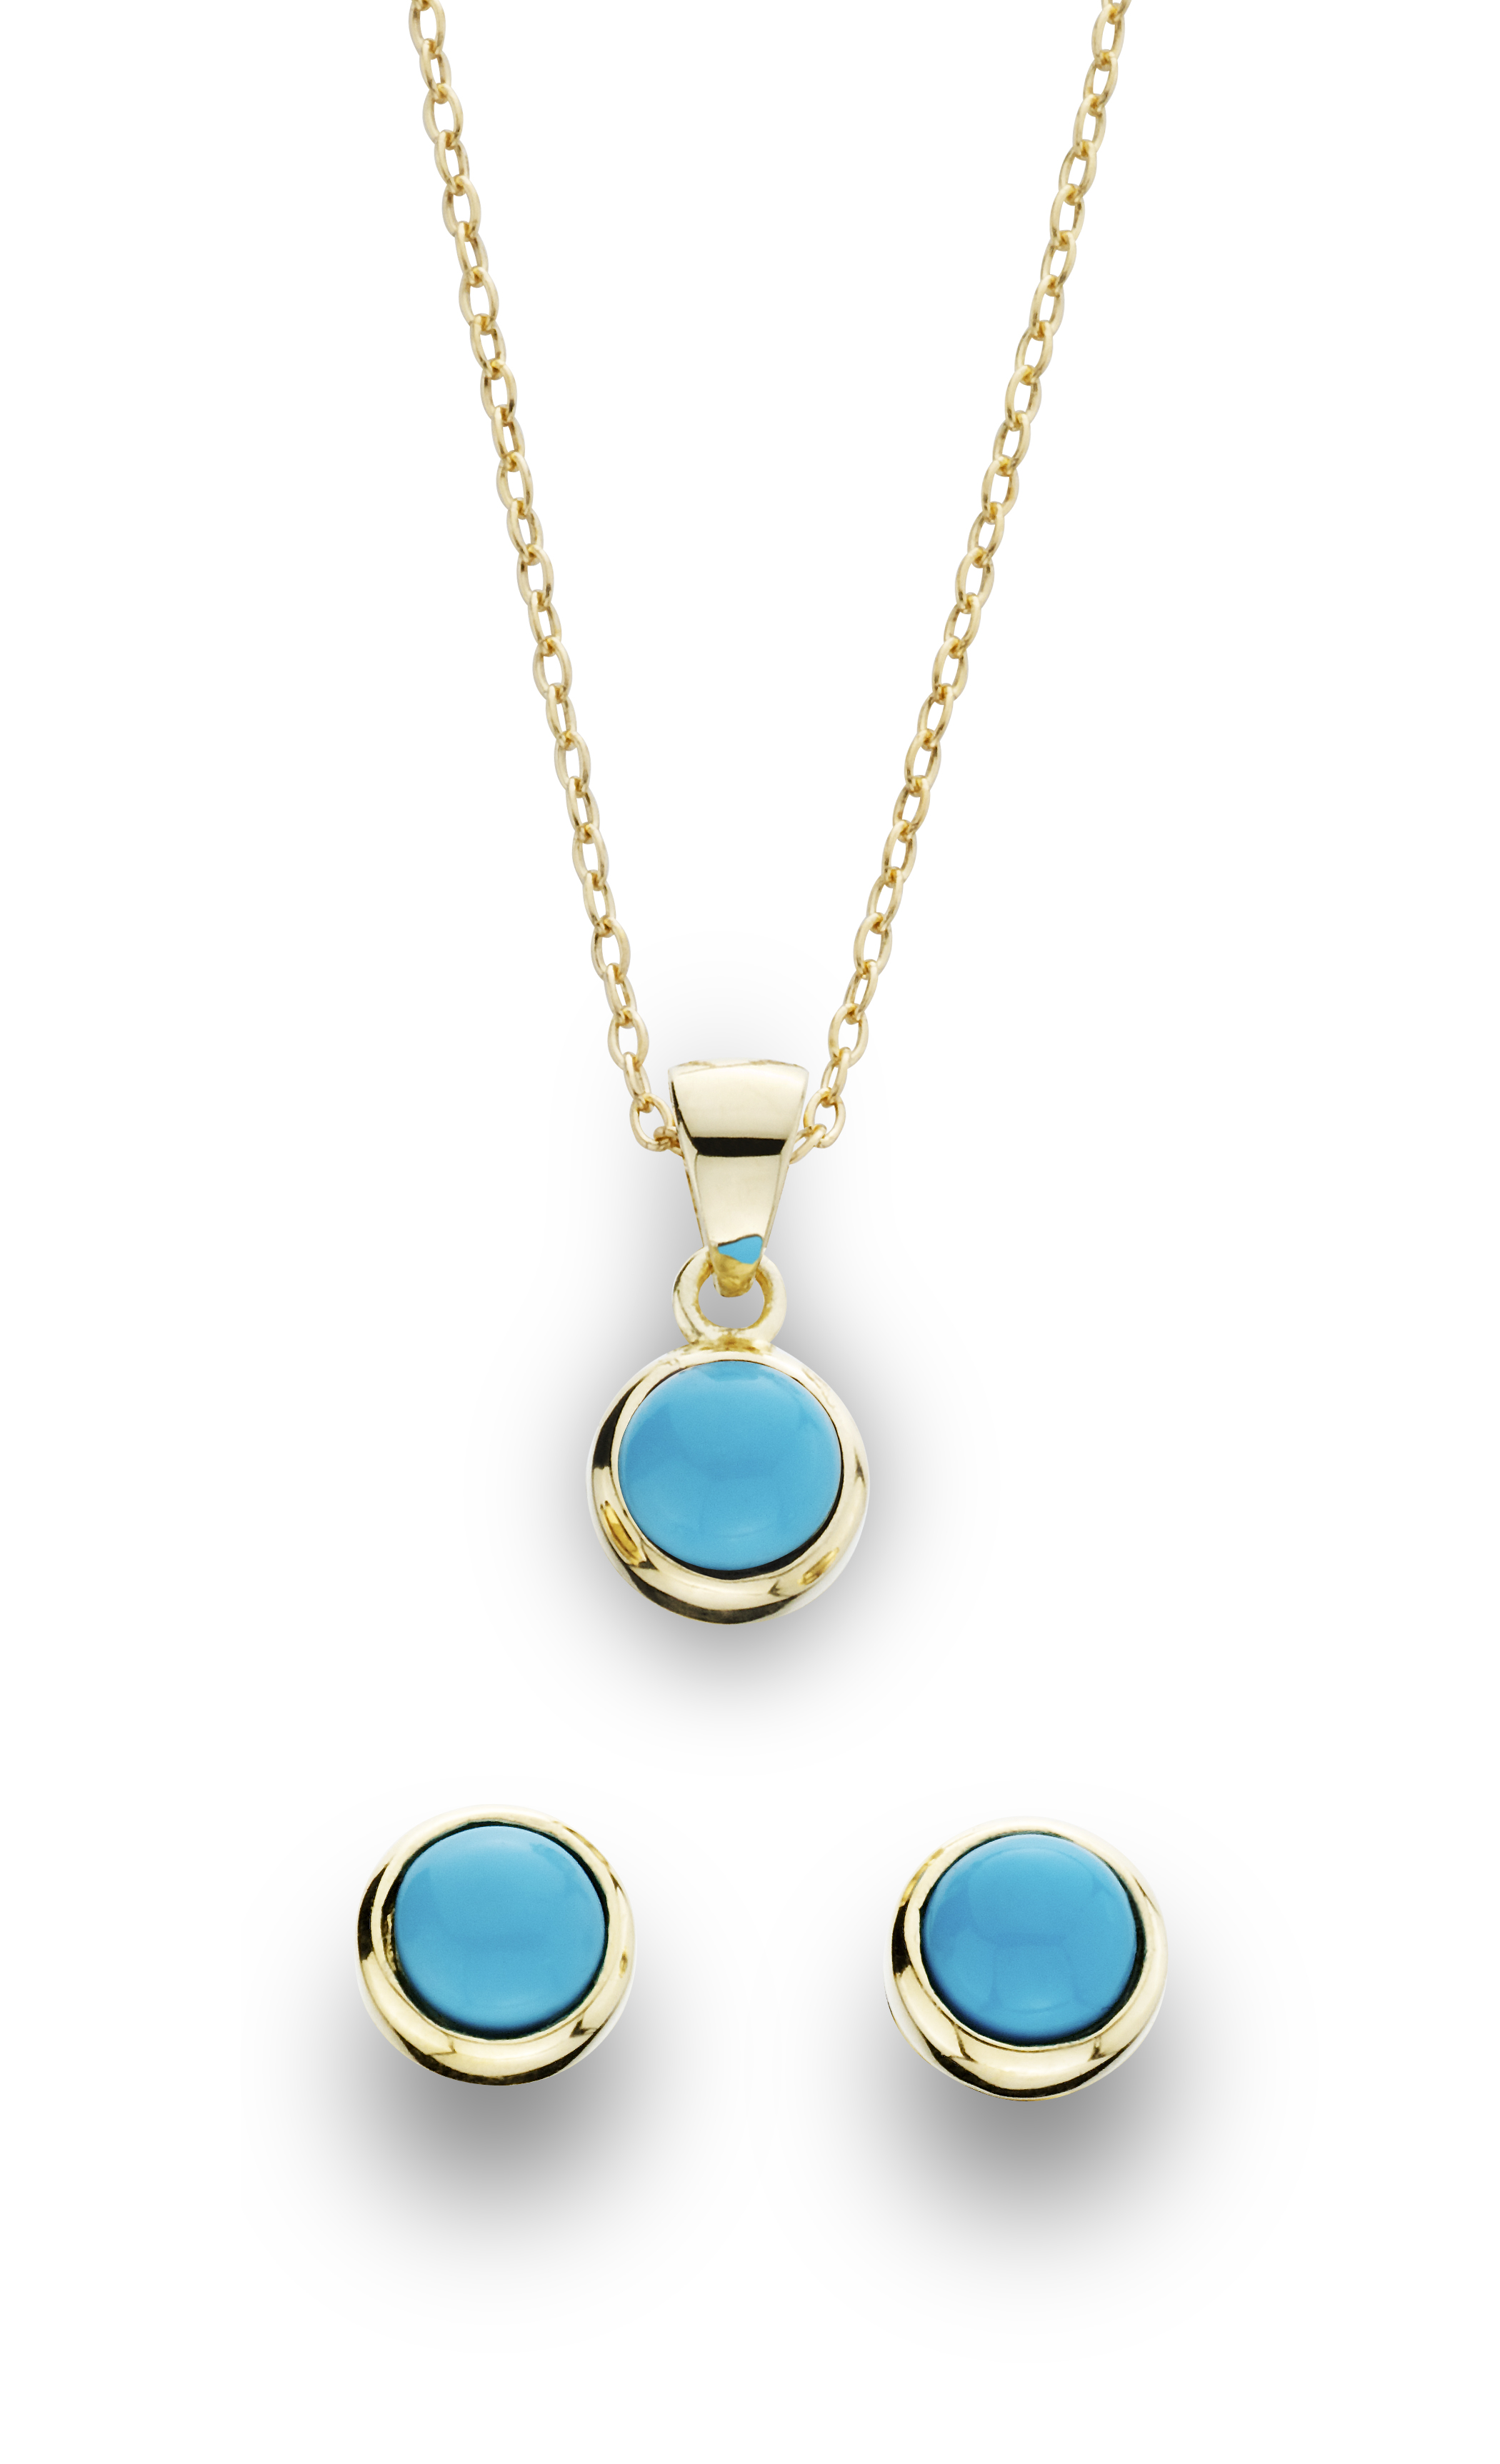 2 Piece Gold over Silver Turquoise Earring and Pendant Set, Blue